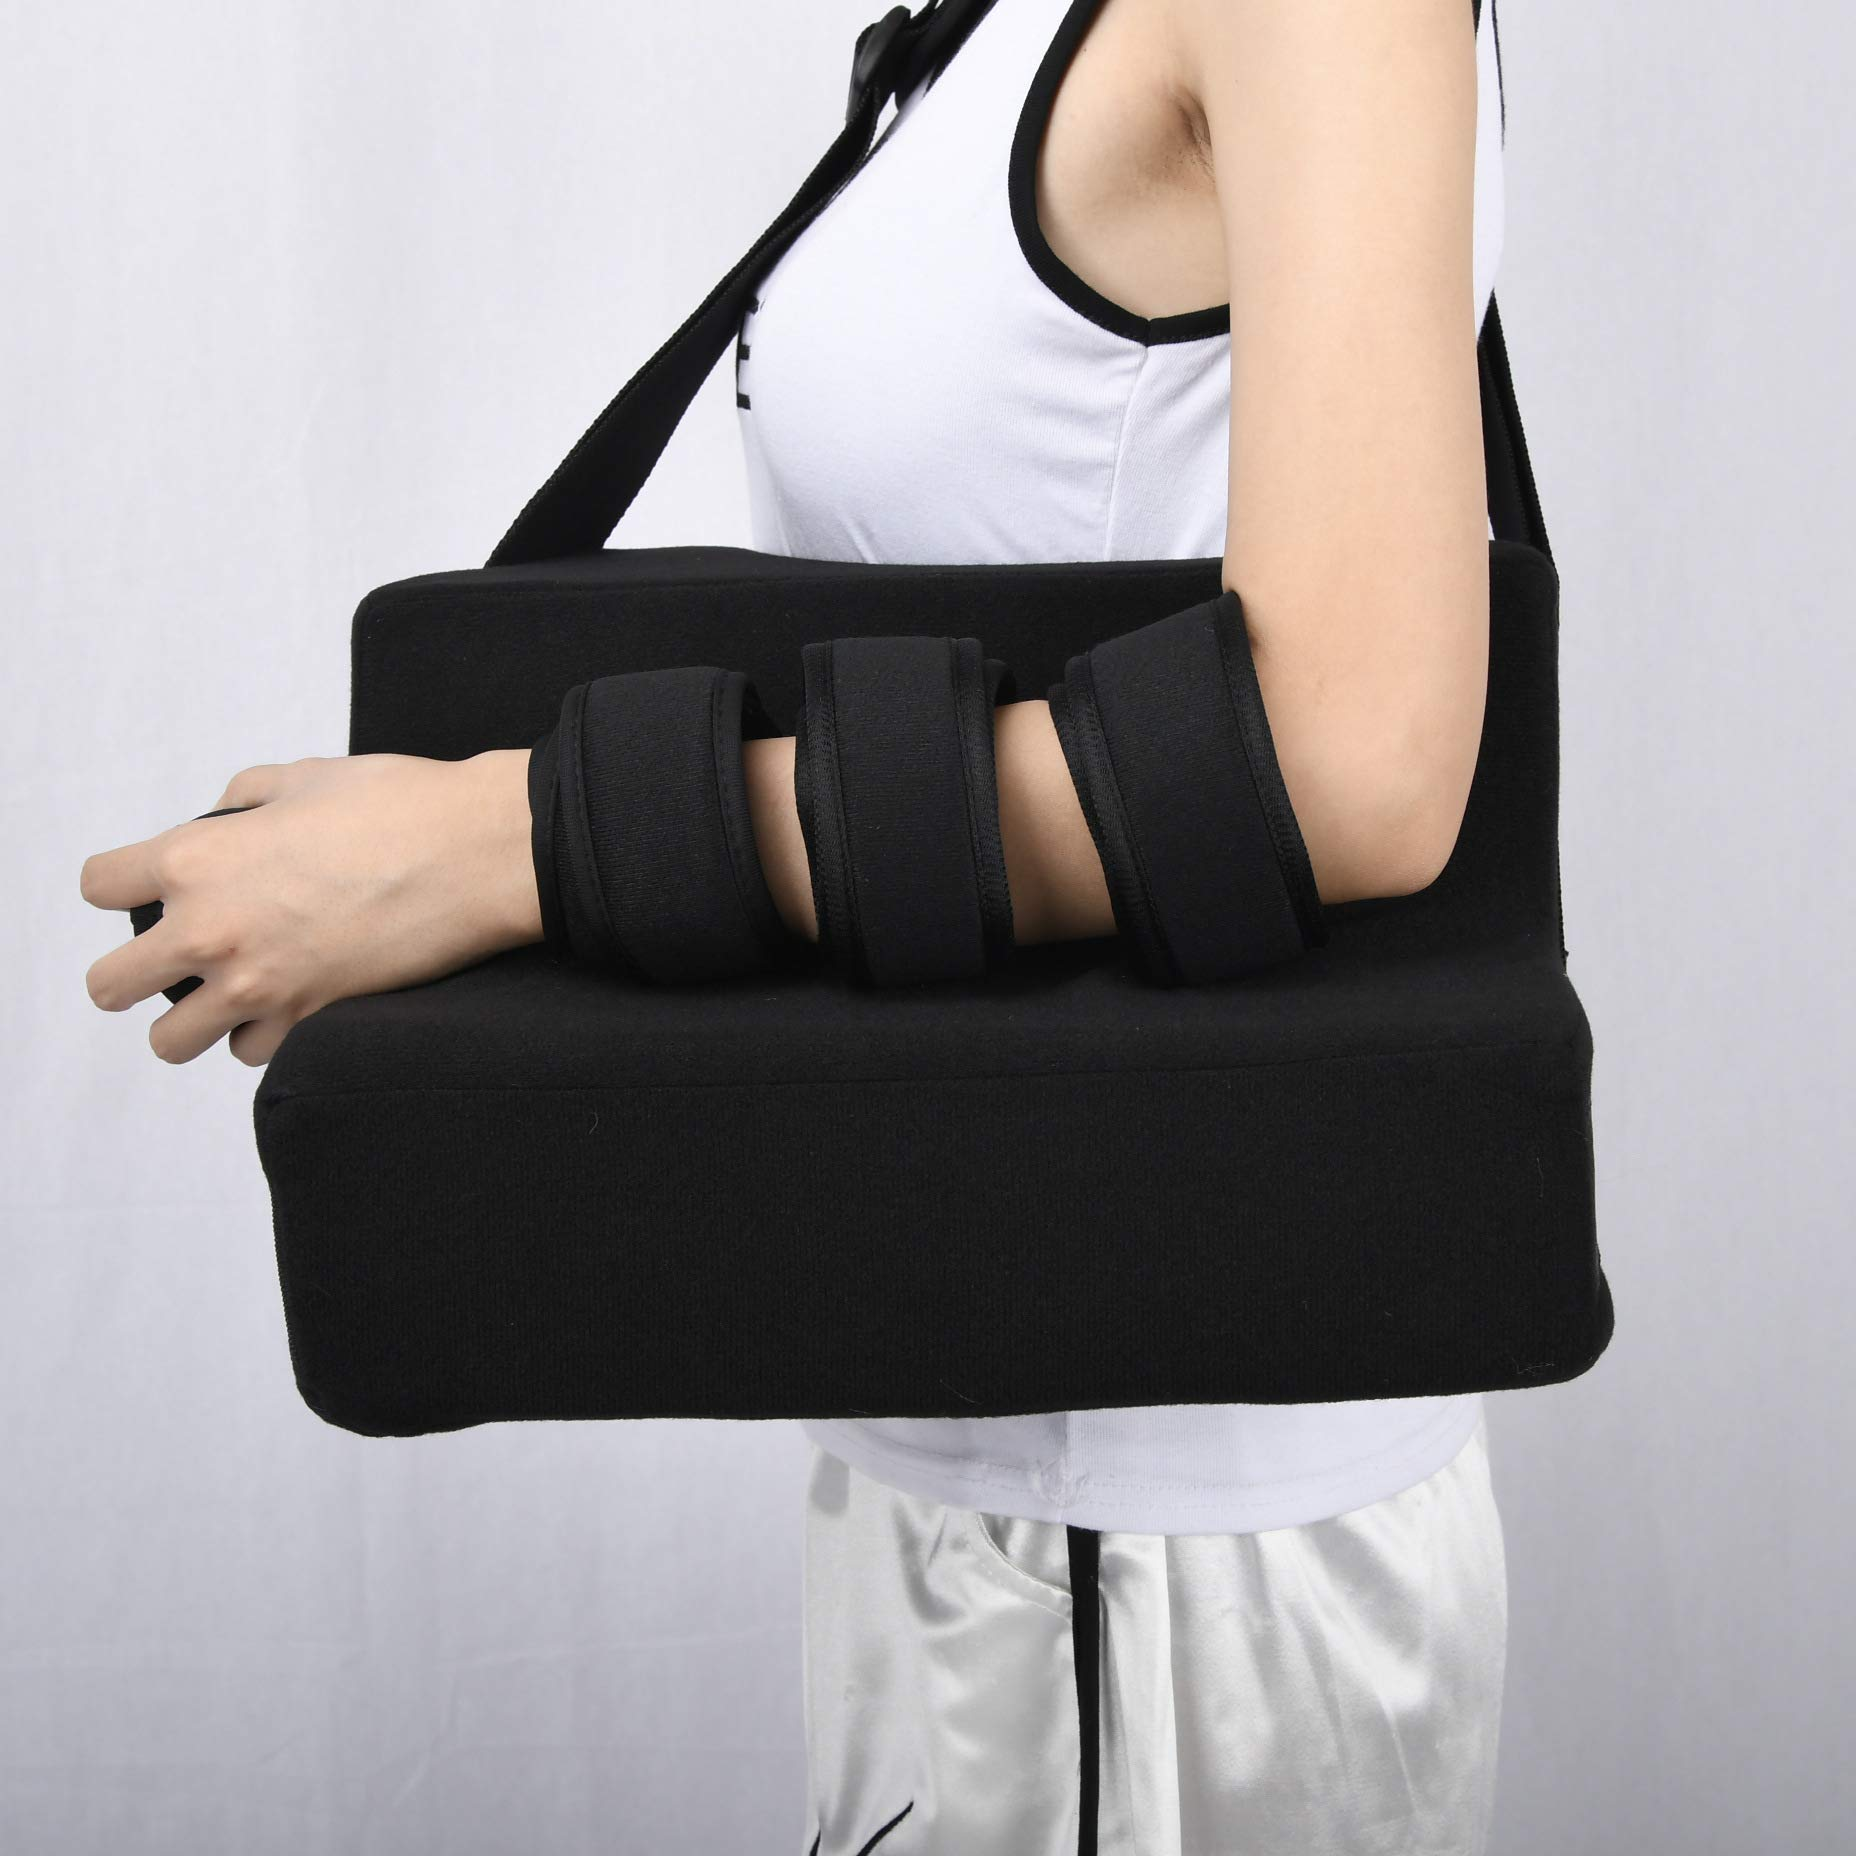 LXT PANDA Shoulder Support Sling, Immobilizer for Injury Support, Shoulder Abduction Sling Rotator Cuff Immobilizer Support Brace with Pillow & Ball. by LXT PANDA